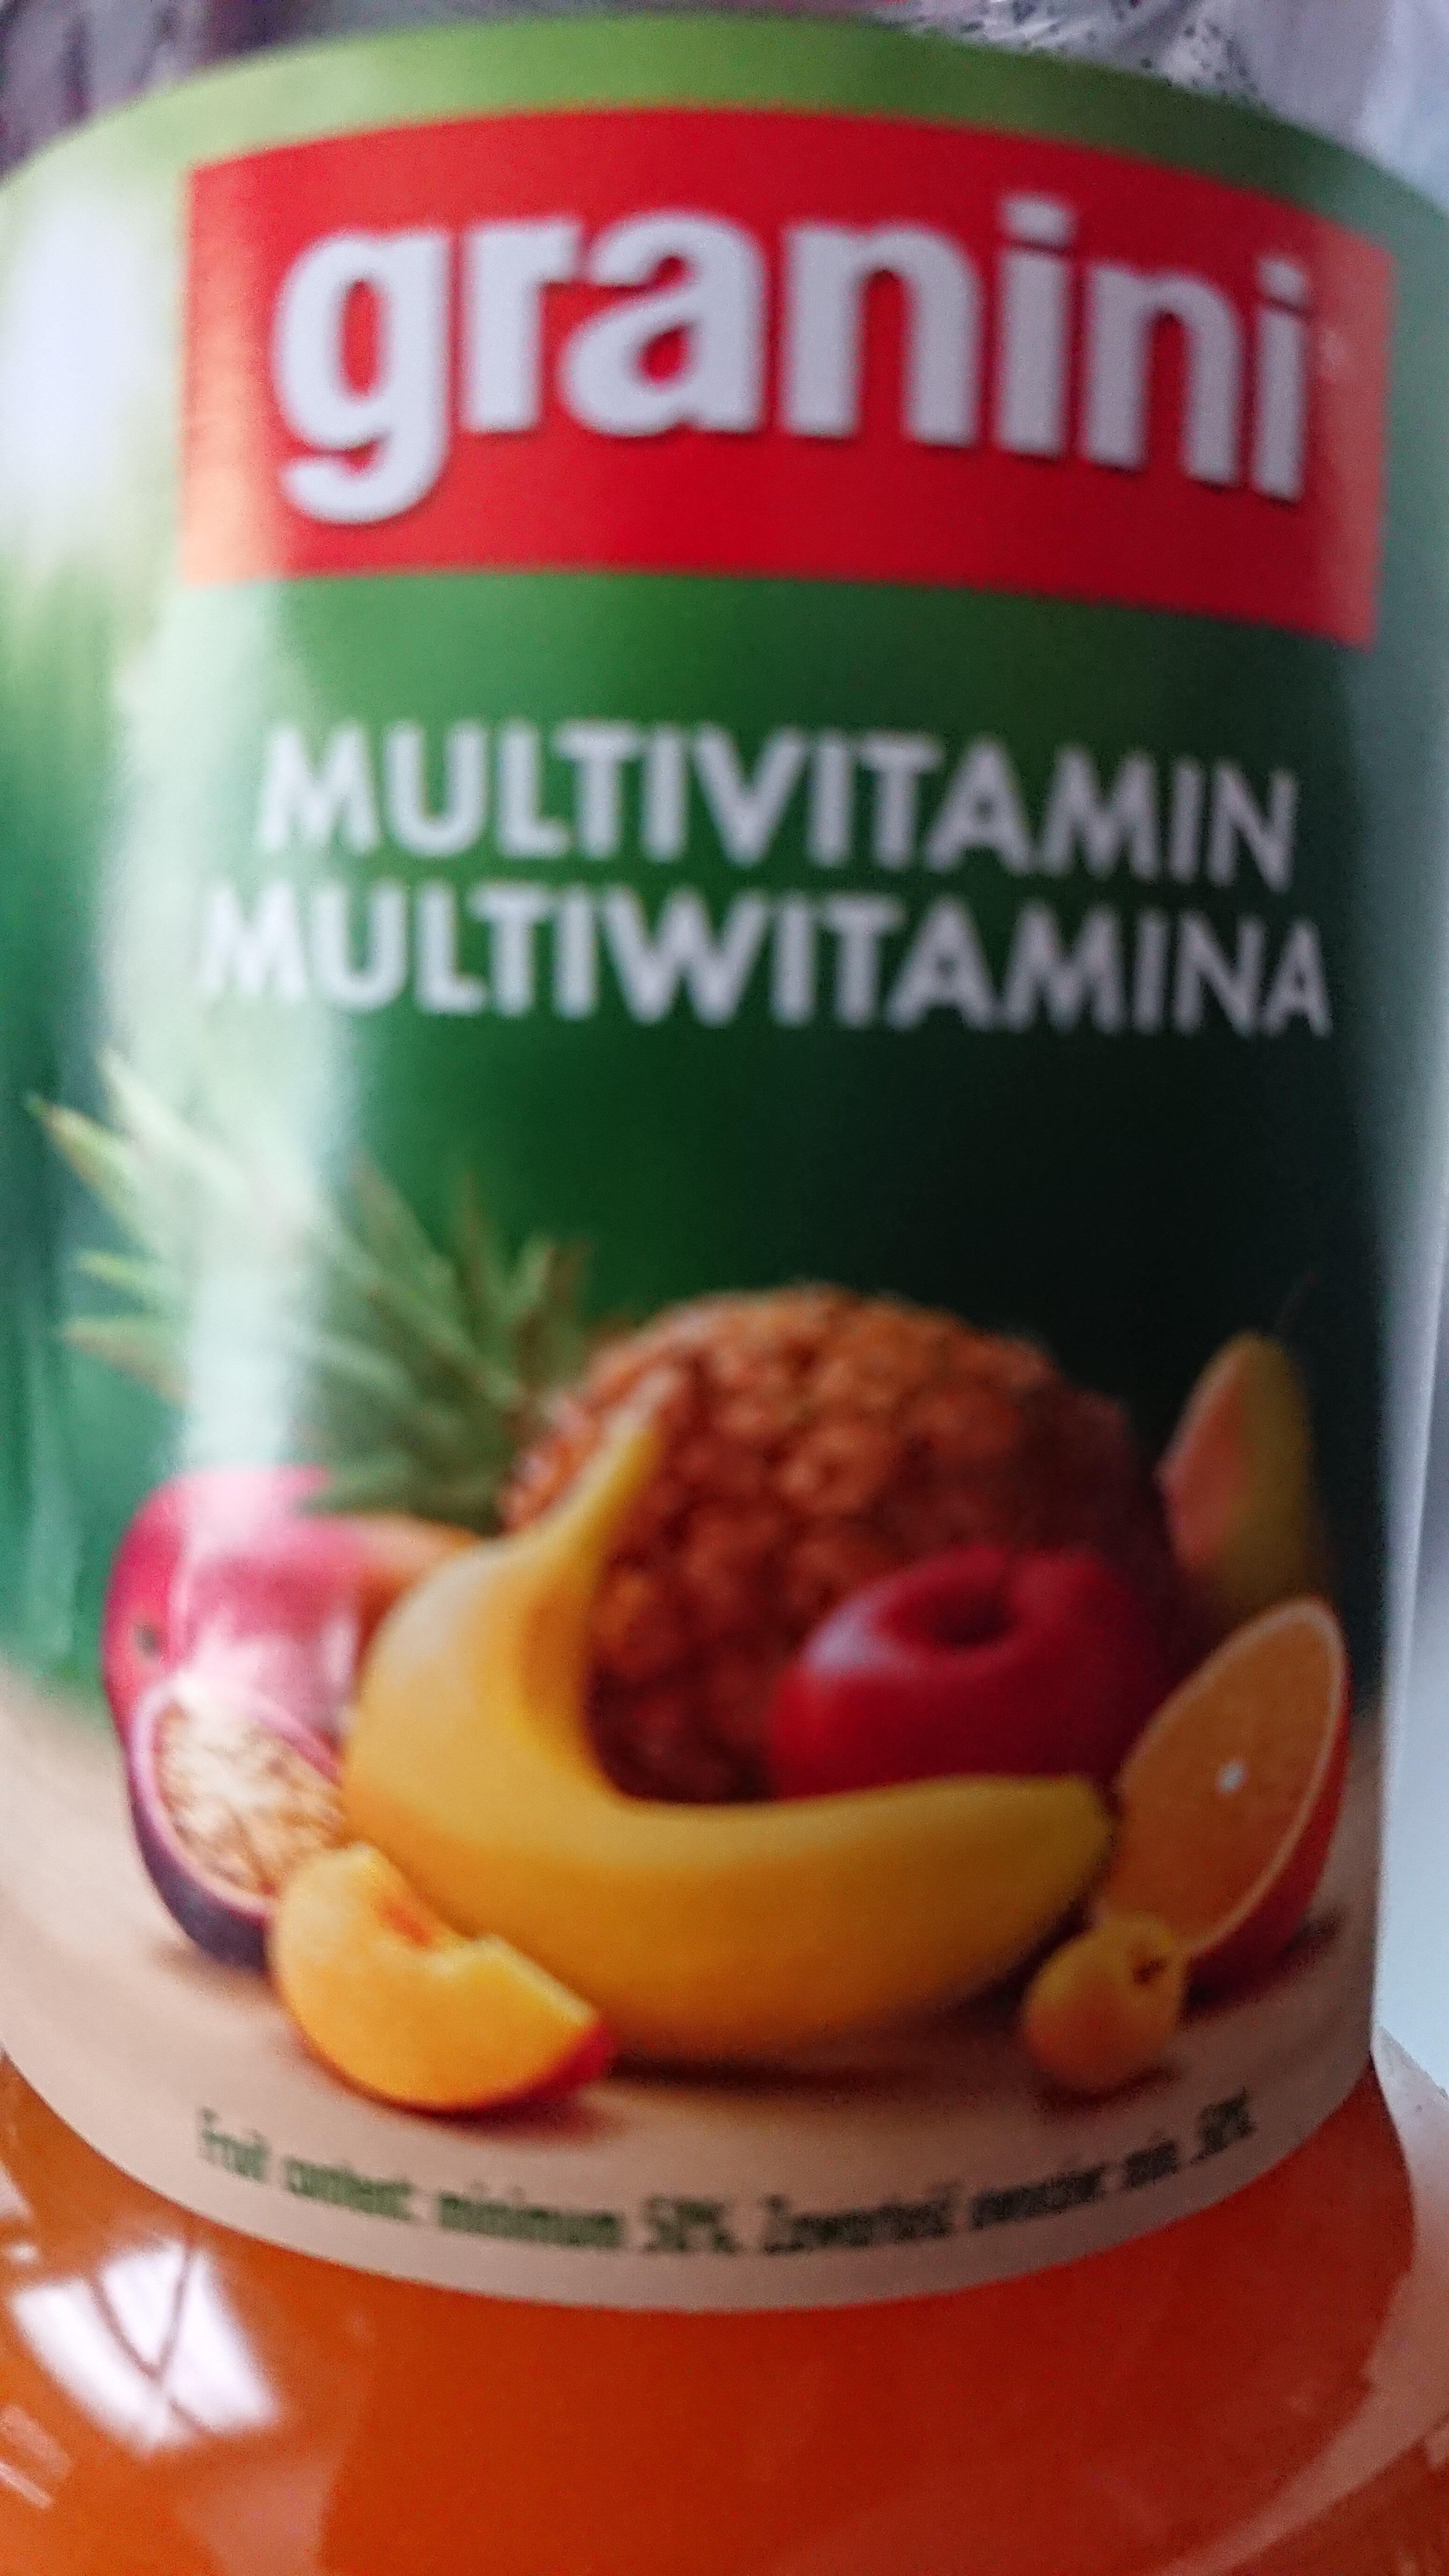 Cocktail multifruit - Product